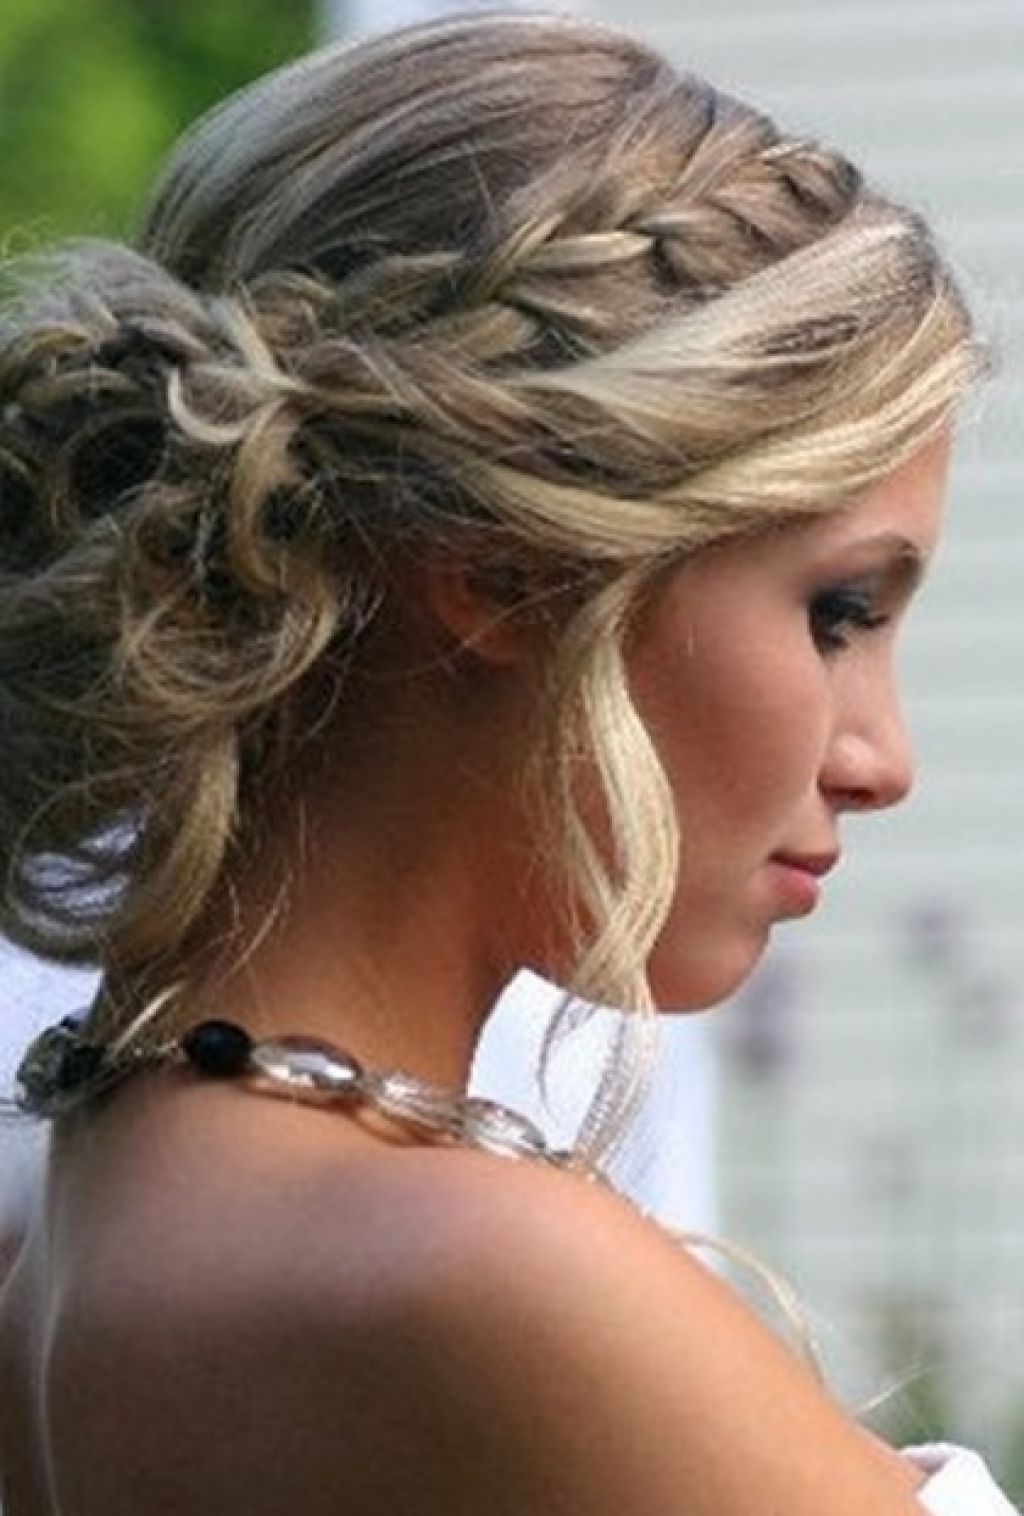 Updo Hairstyles With Braid Hairstyle Ideas Pertaining To Long Formal Updo Hairstyles (Gallery 10 of 15)